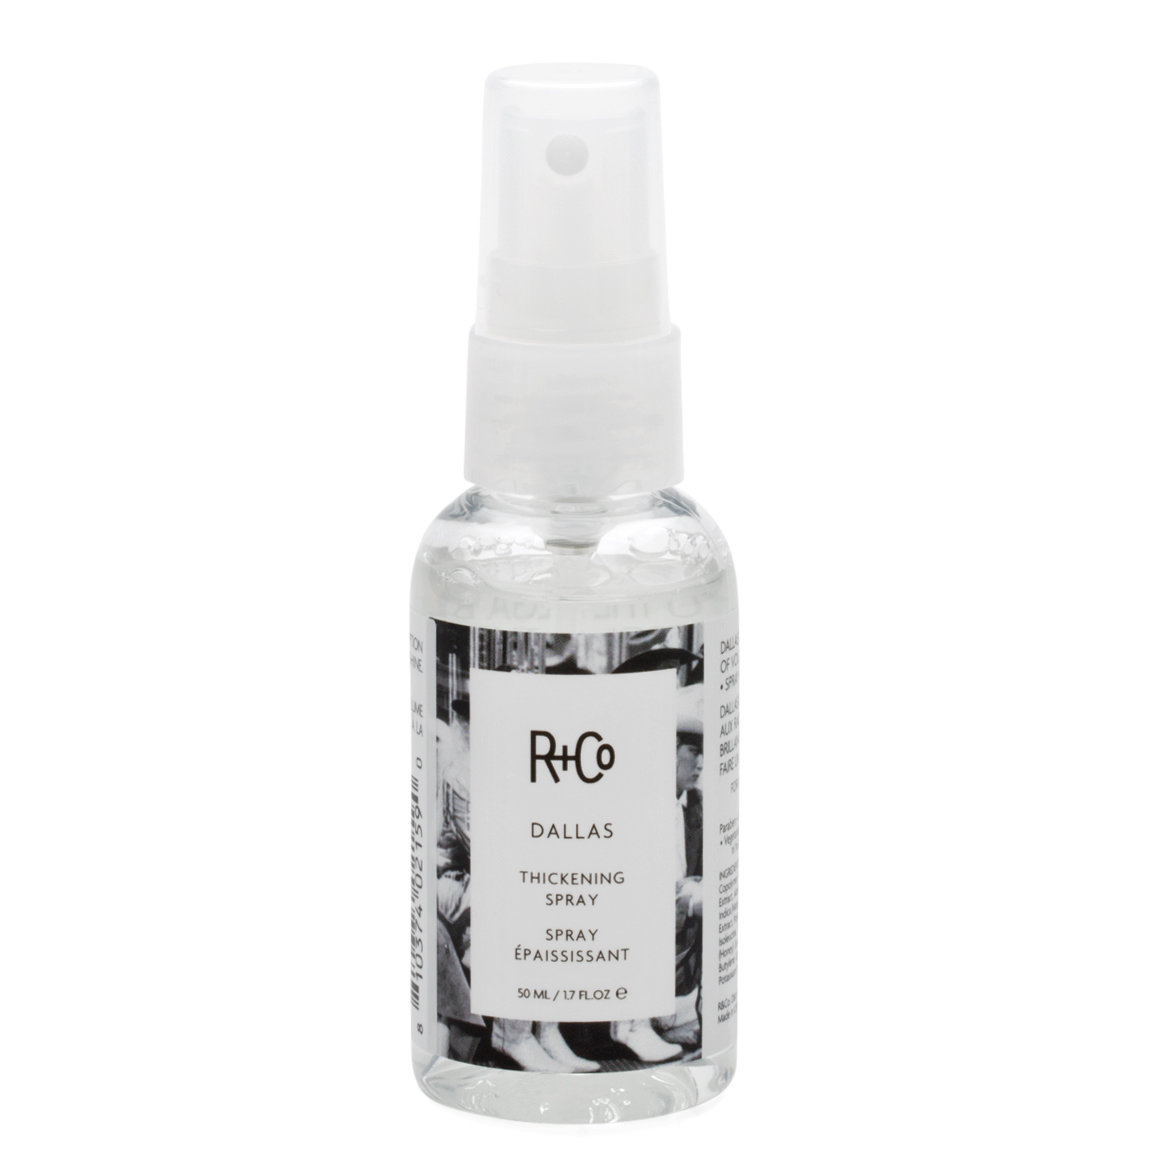 R+Co Dallas Thickening Spray 1.7 oz alternative view 1 - product swatch.